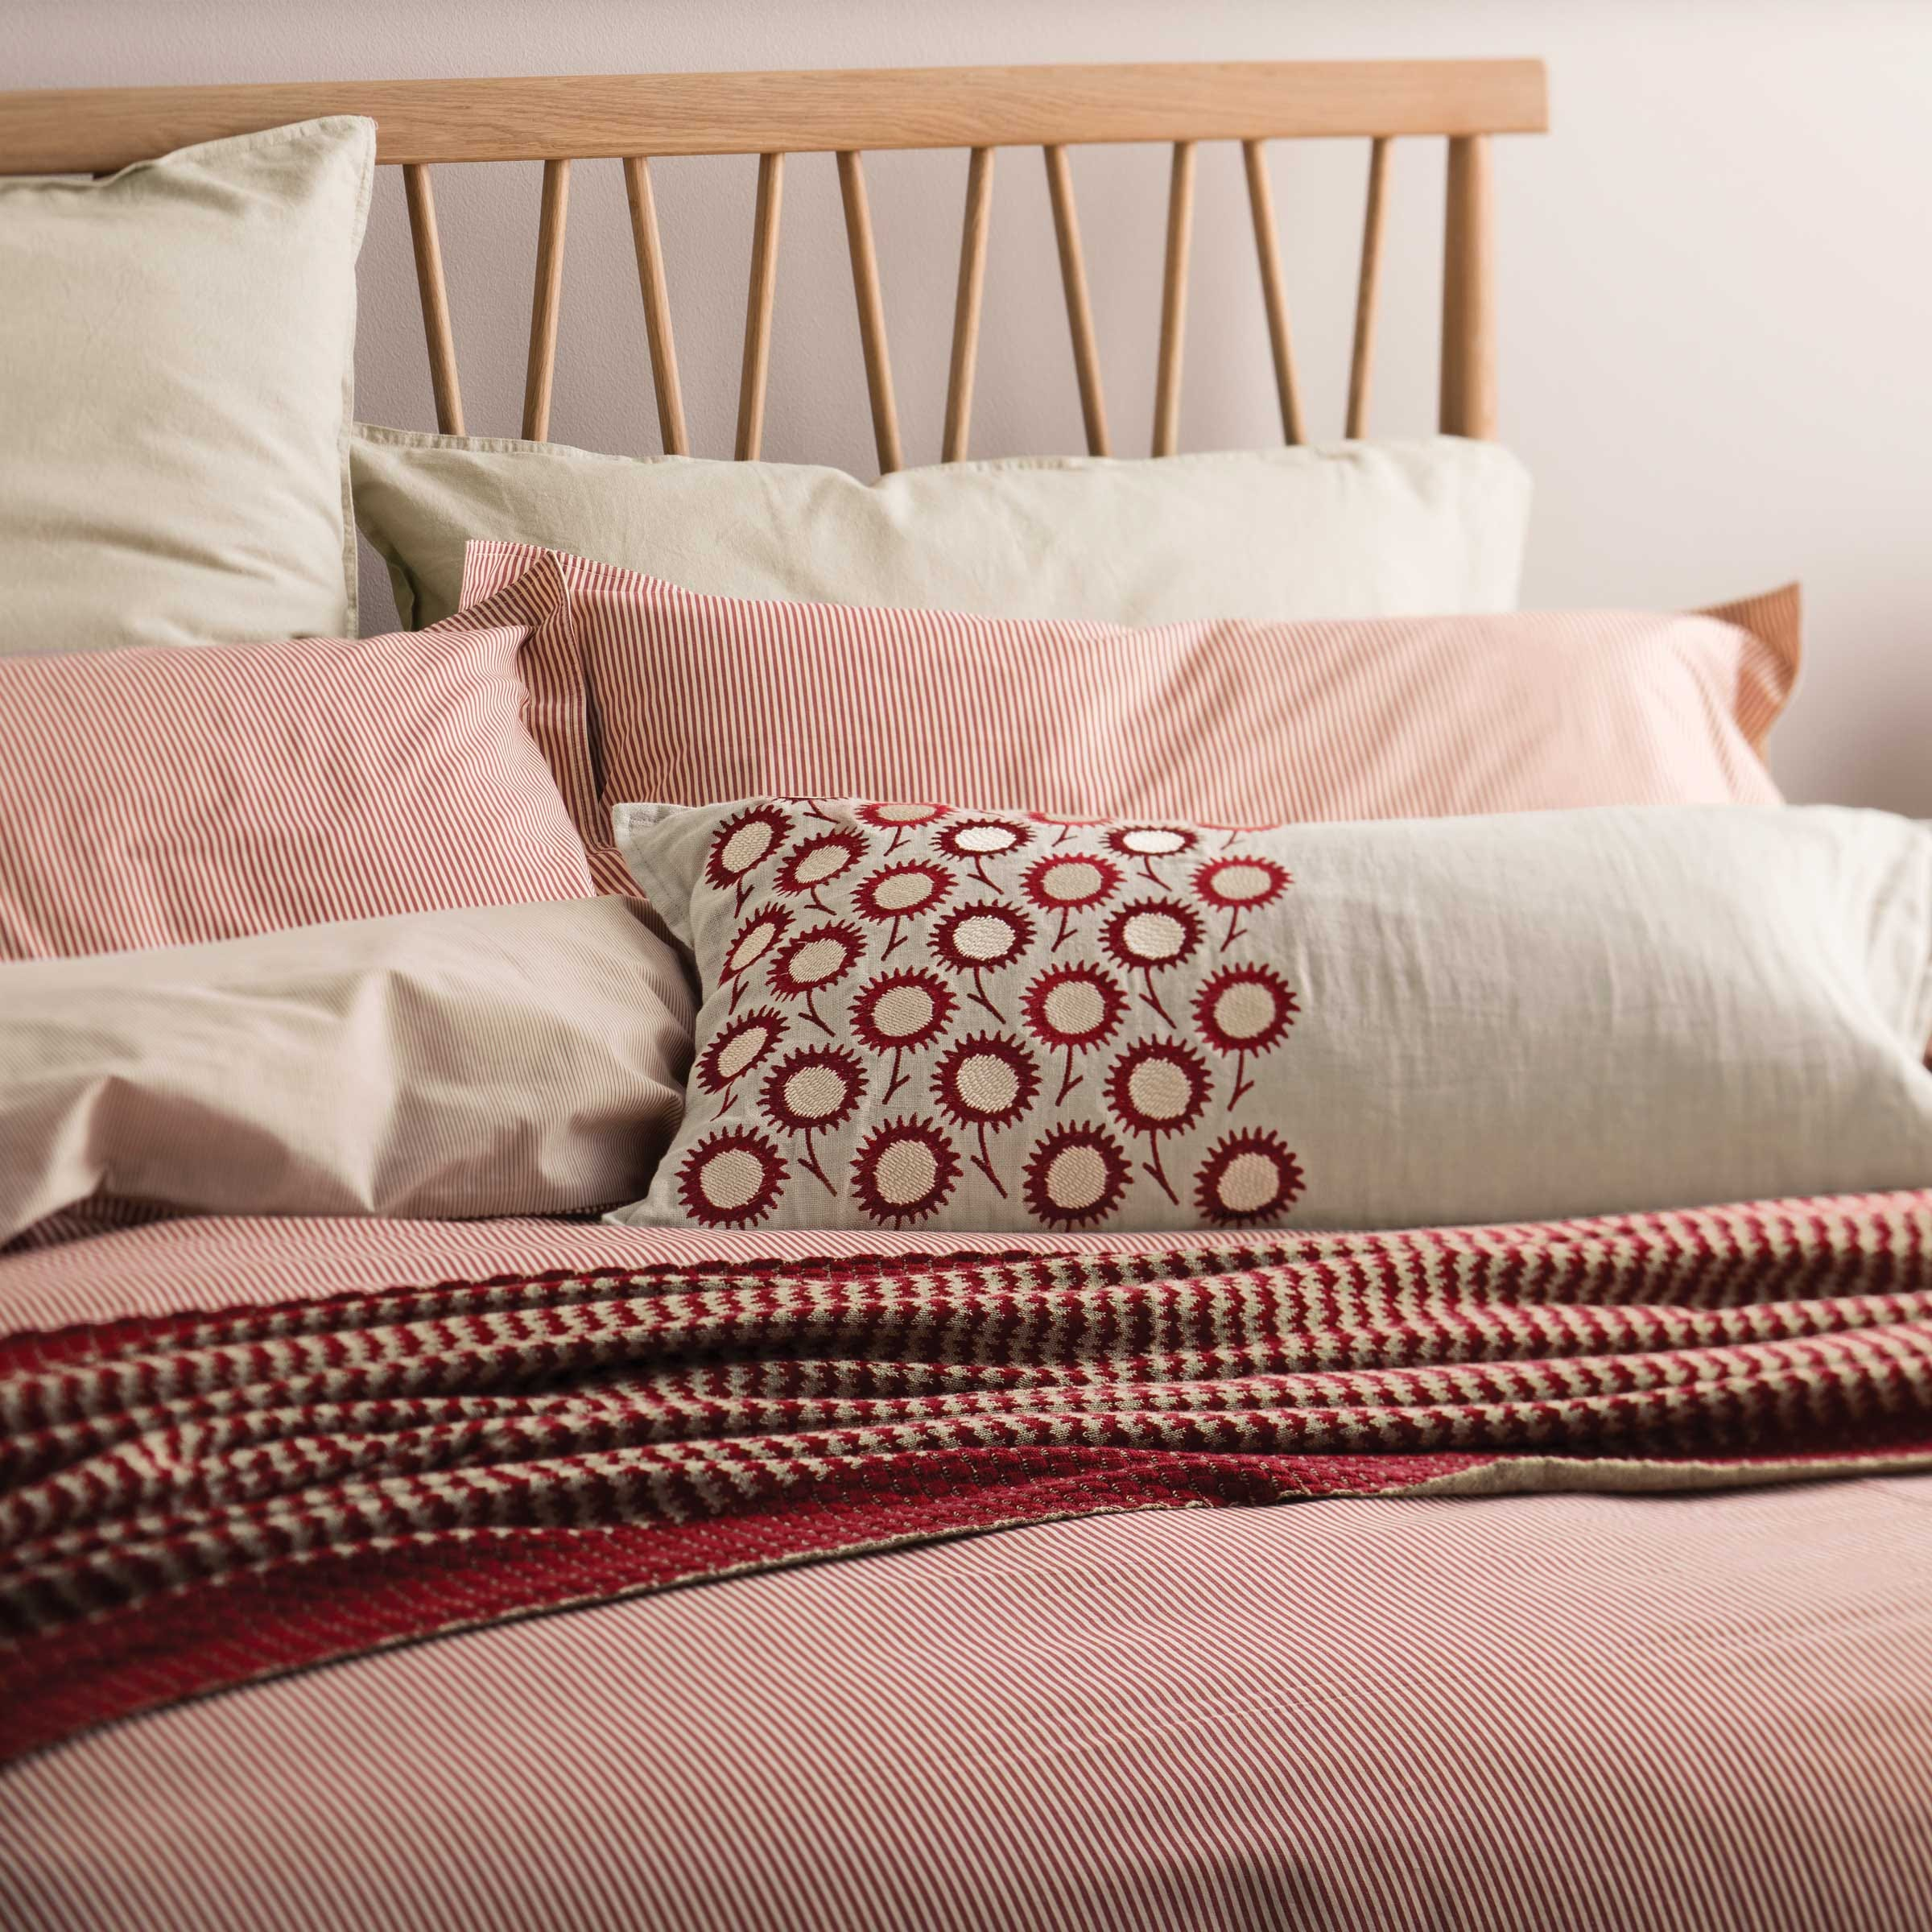 Murmur Pencil Stripe Bedding in Red and Linen